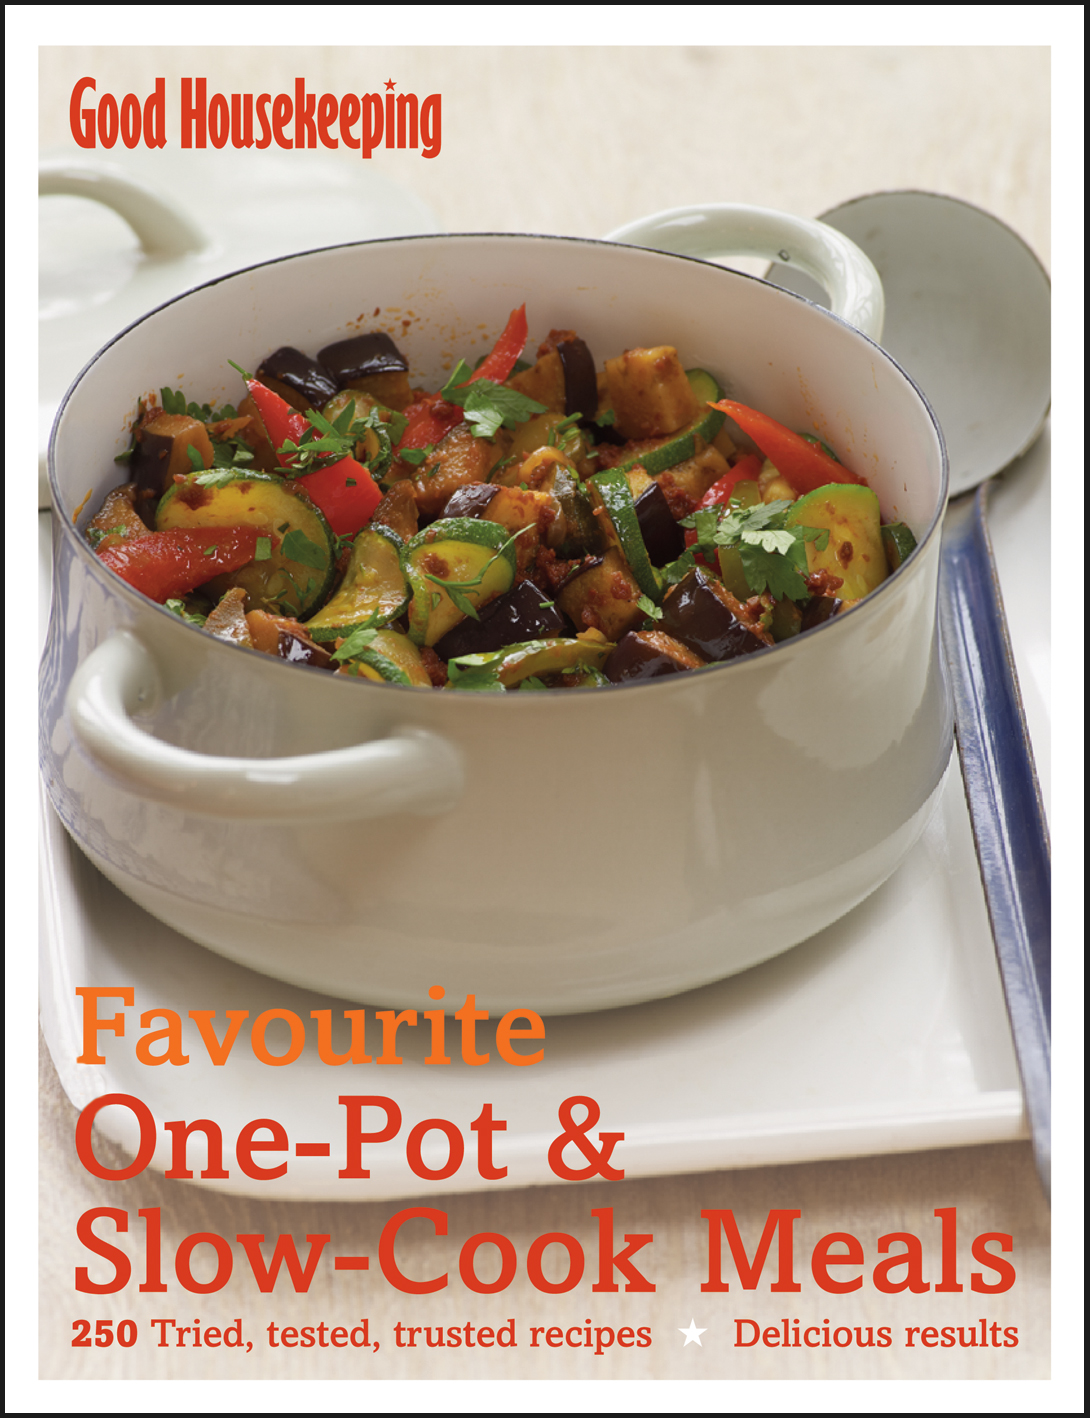 Good Housekeeping Favourite One-Pot & Slow-Cook Meals